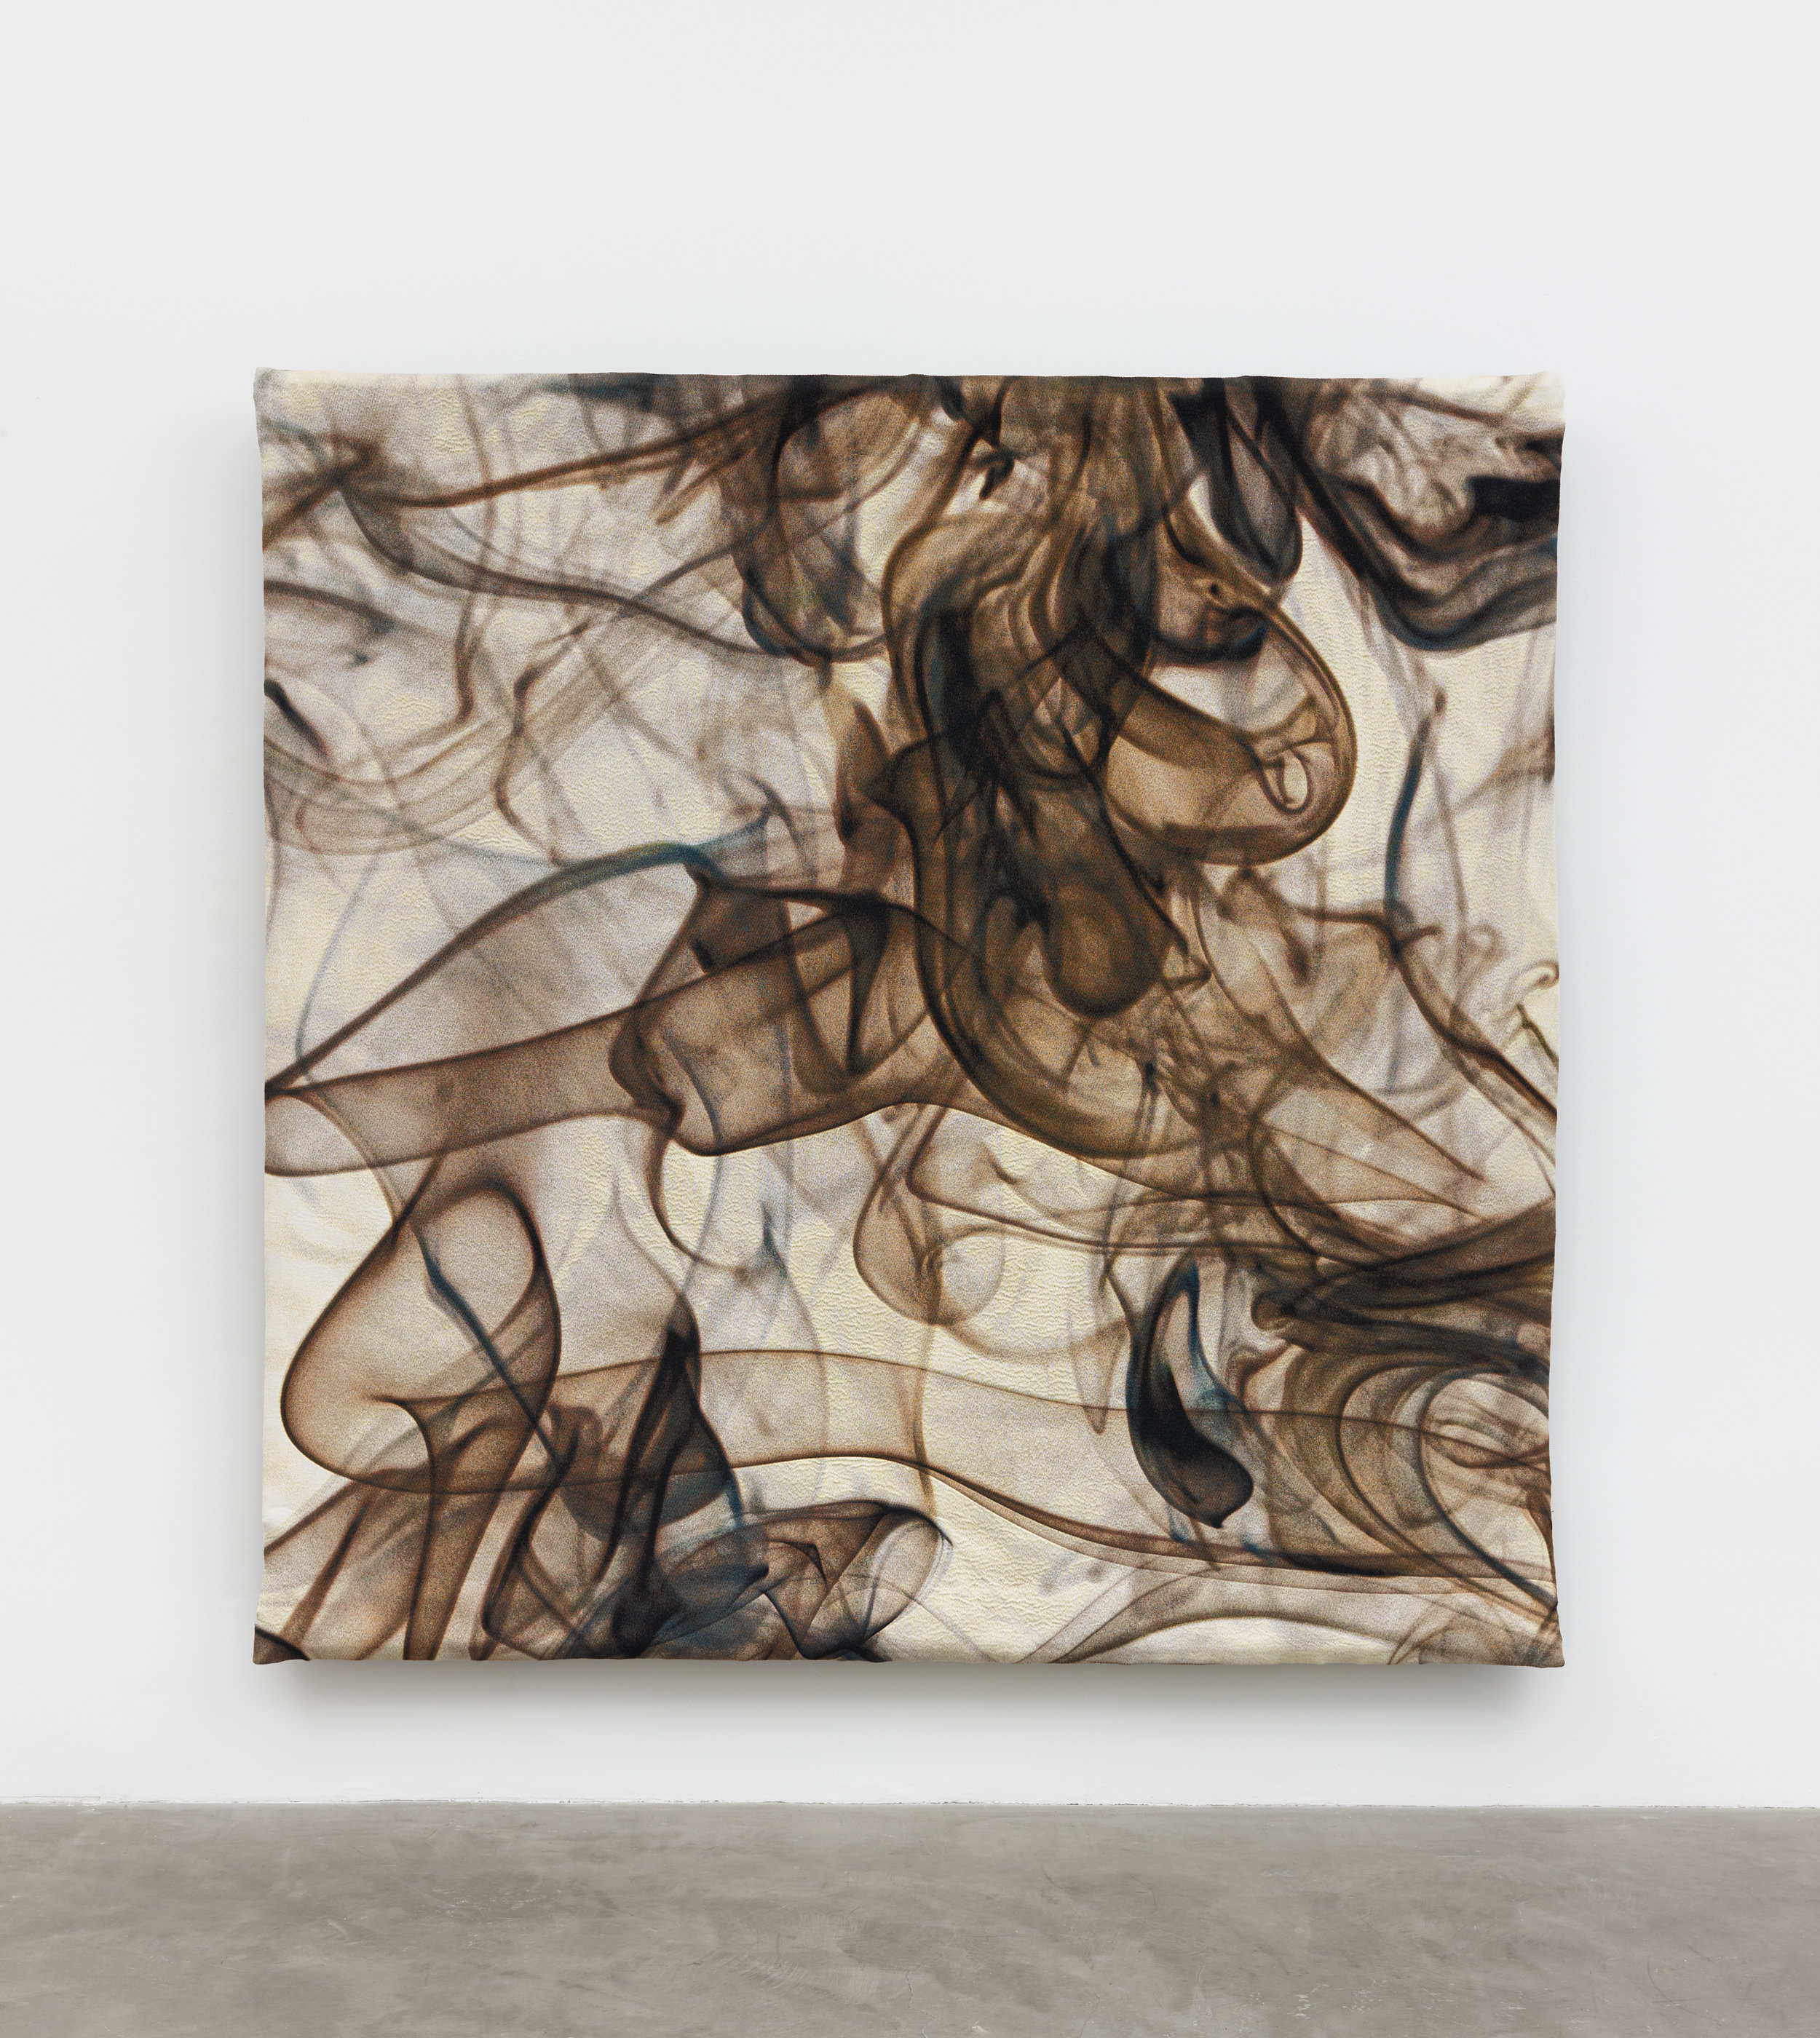 Pae White,  Vivo Qui , 2019, cotton, polyester and trevisa